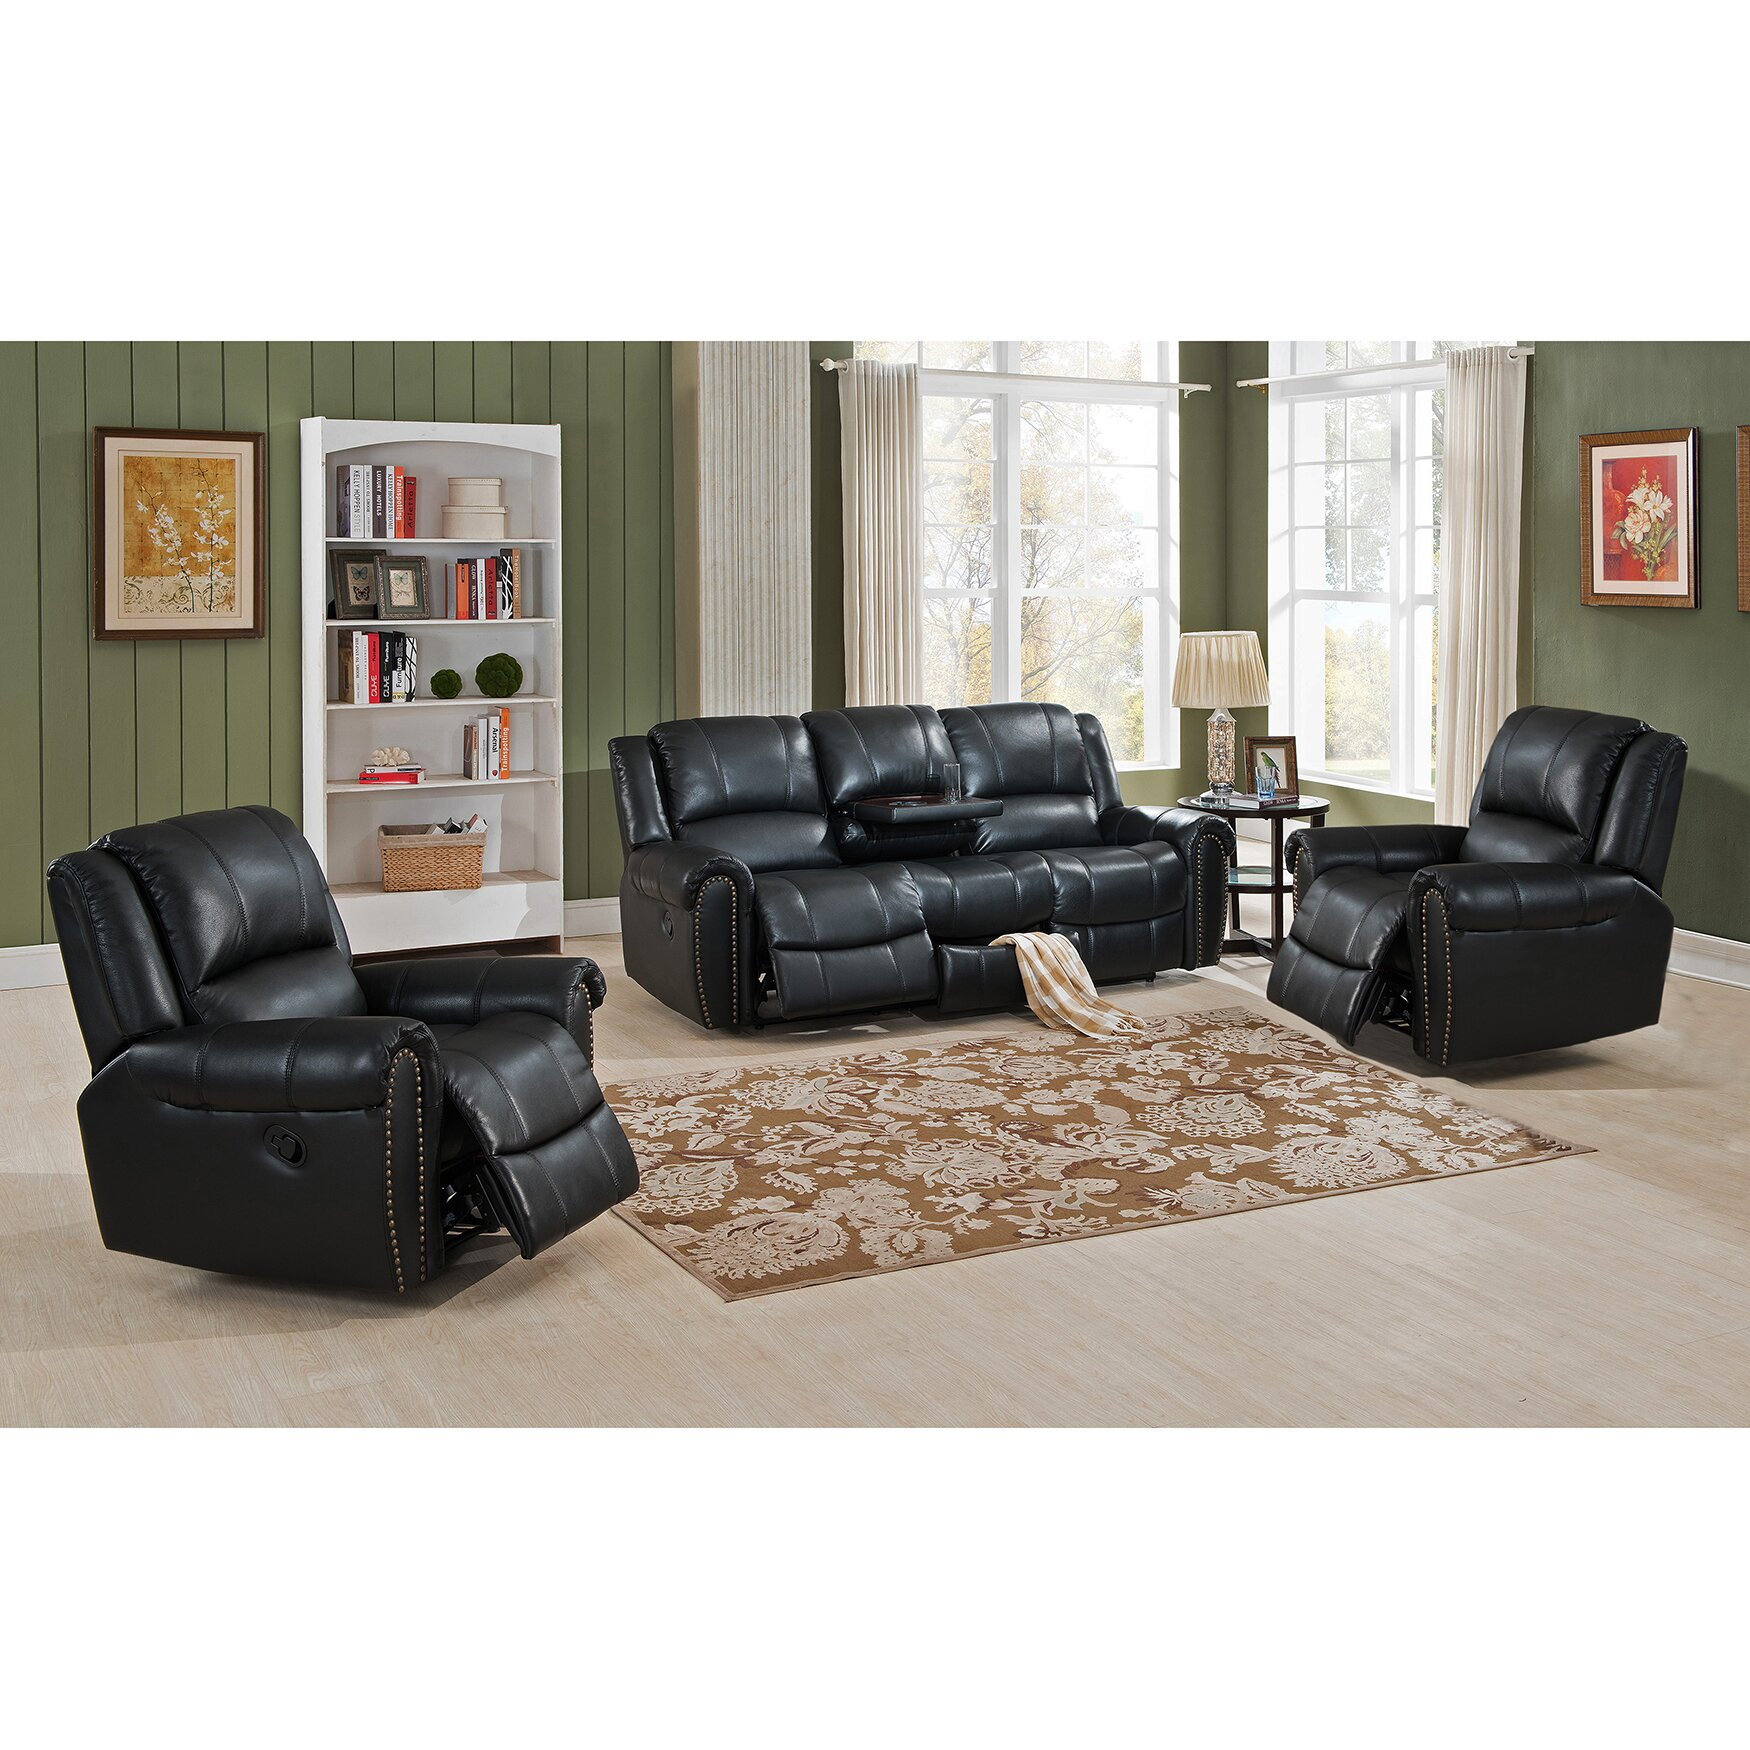 Houston 3 piece leather recliner living room set houston scc jpg